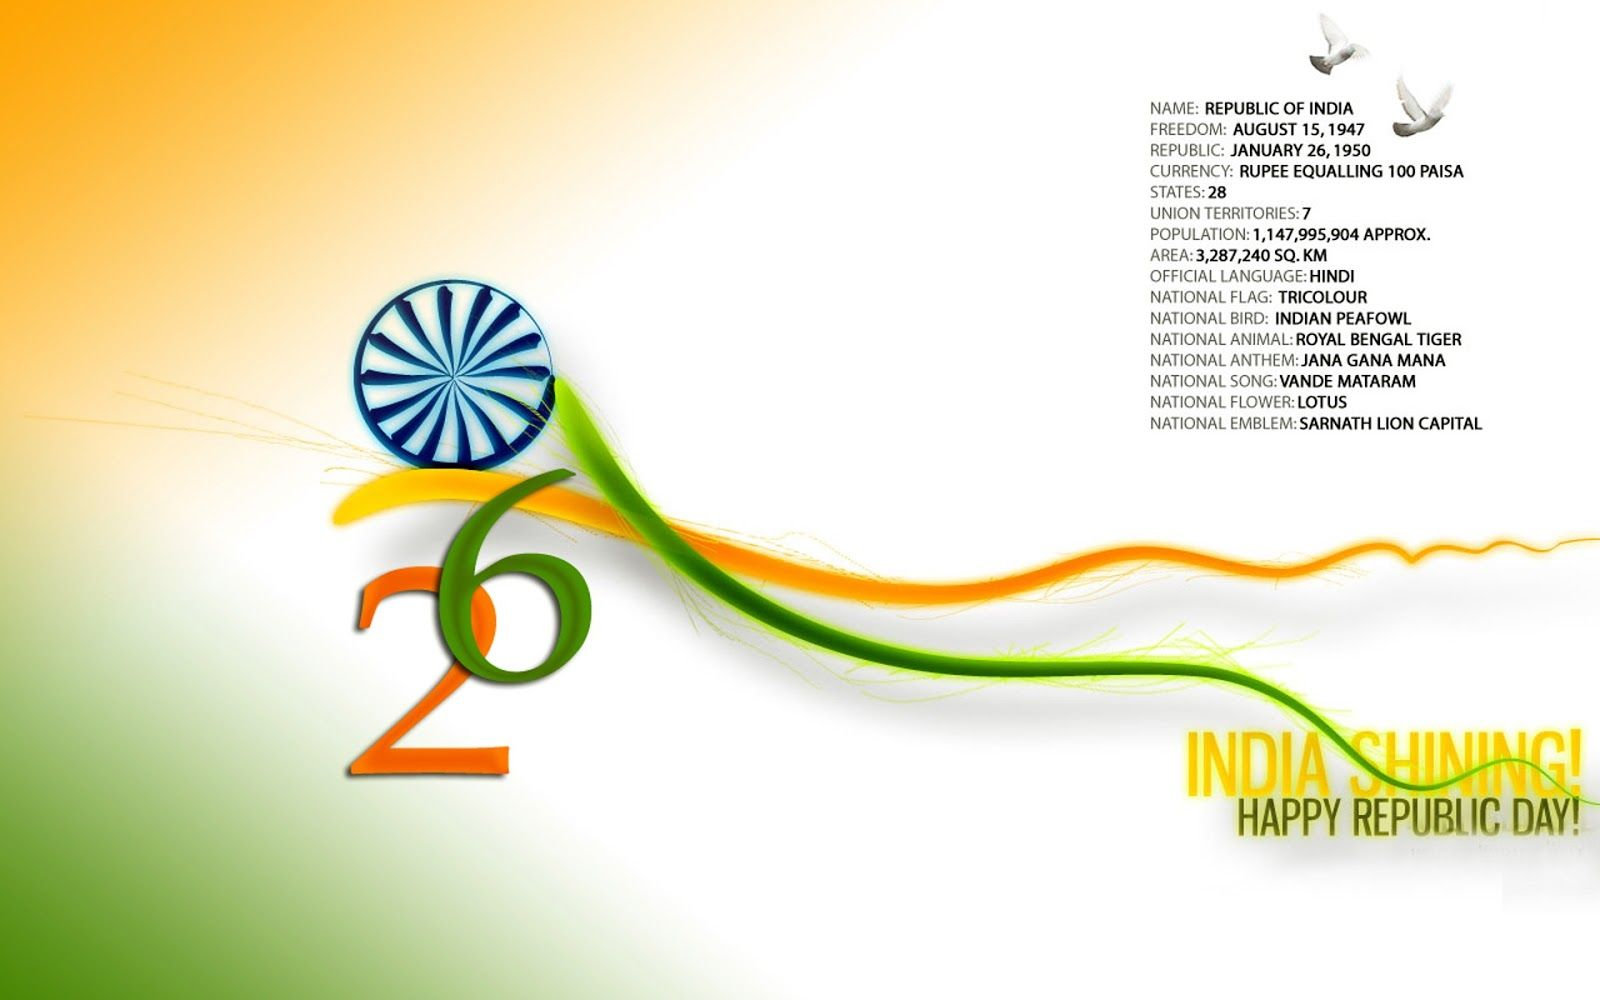 Example Of Essay Proposal Lines On Republic Day Essay On Republic Day Happy Republic Day   Republic High School Application Essay Samples also Argument Essay Thesis Statement Pin By Priyanka On Board Idea  Republic Day Essay On Republic Day  Reflective Essay Sample Paper